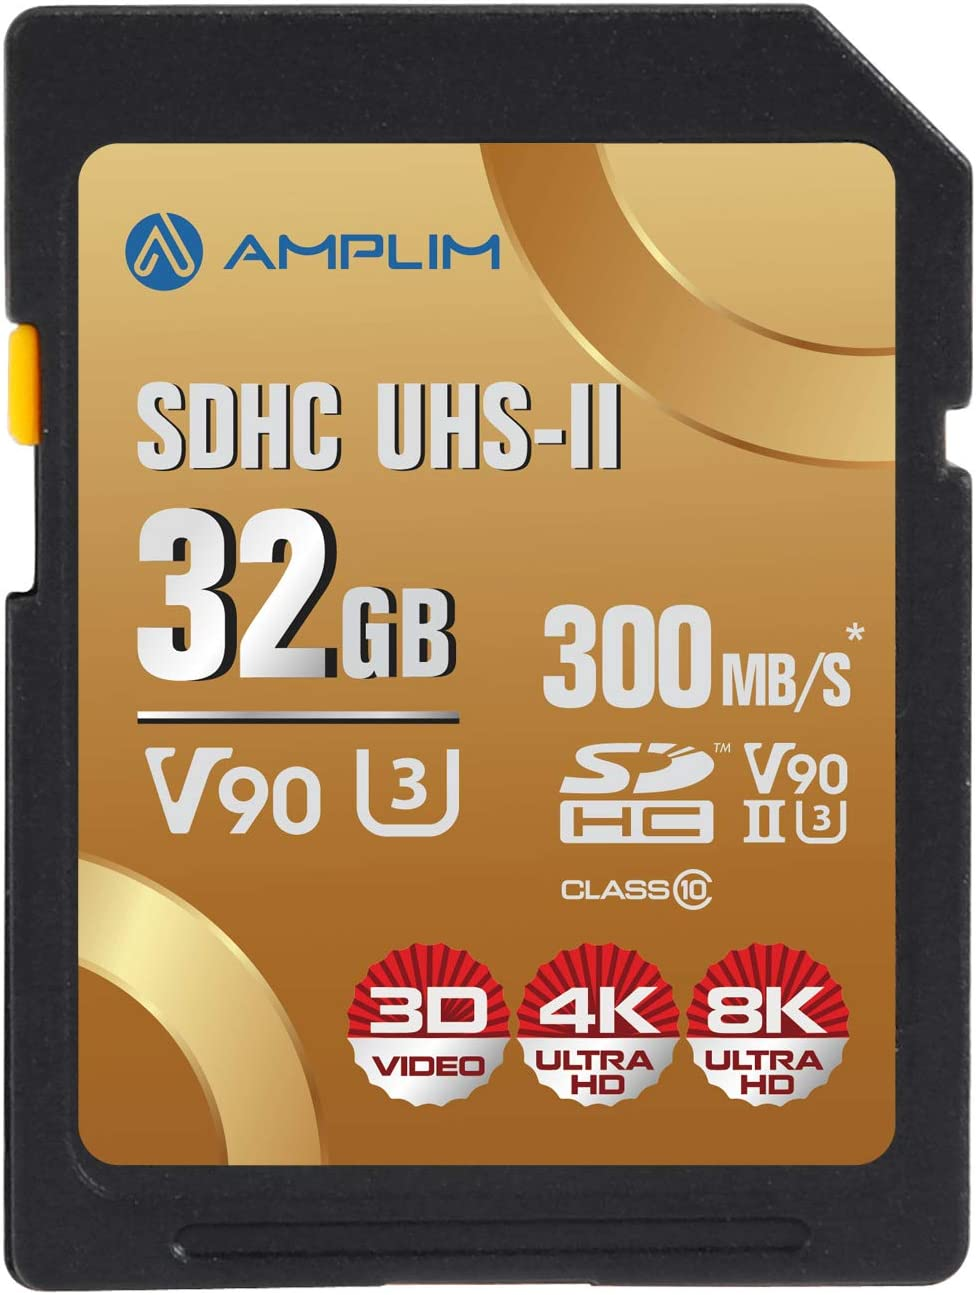 Amplim 32GB V90 UHS-II SD SDHC Card, 300MB/S 2000X Read/Write Lightning Speed Performance, Extreme Read, U3 Secure Digital Memory Storage for Professional Photographer and Videographer